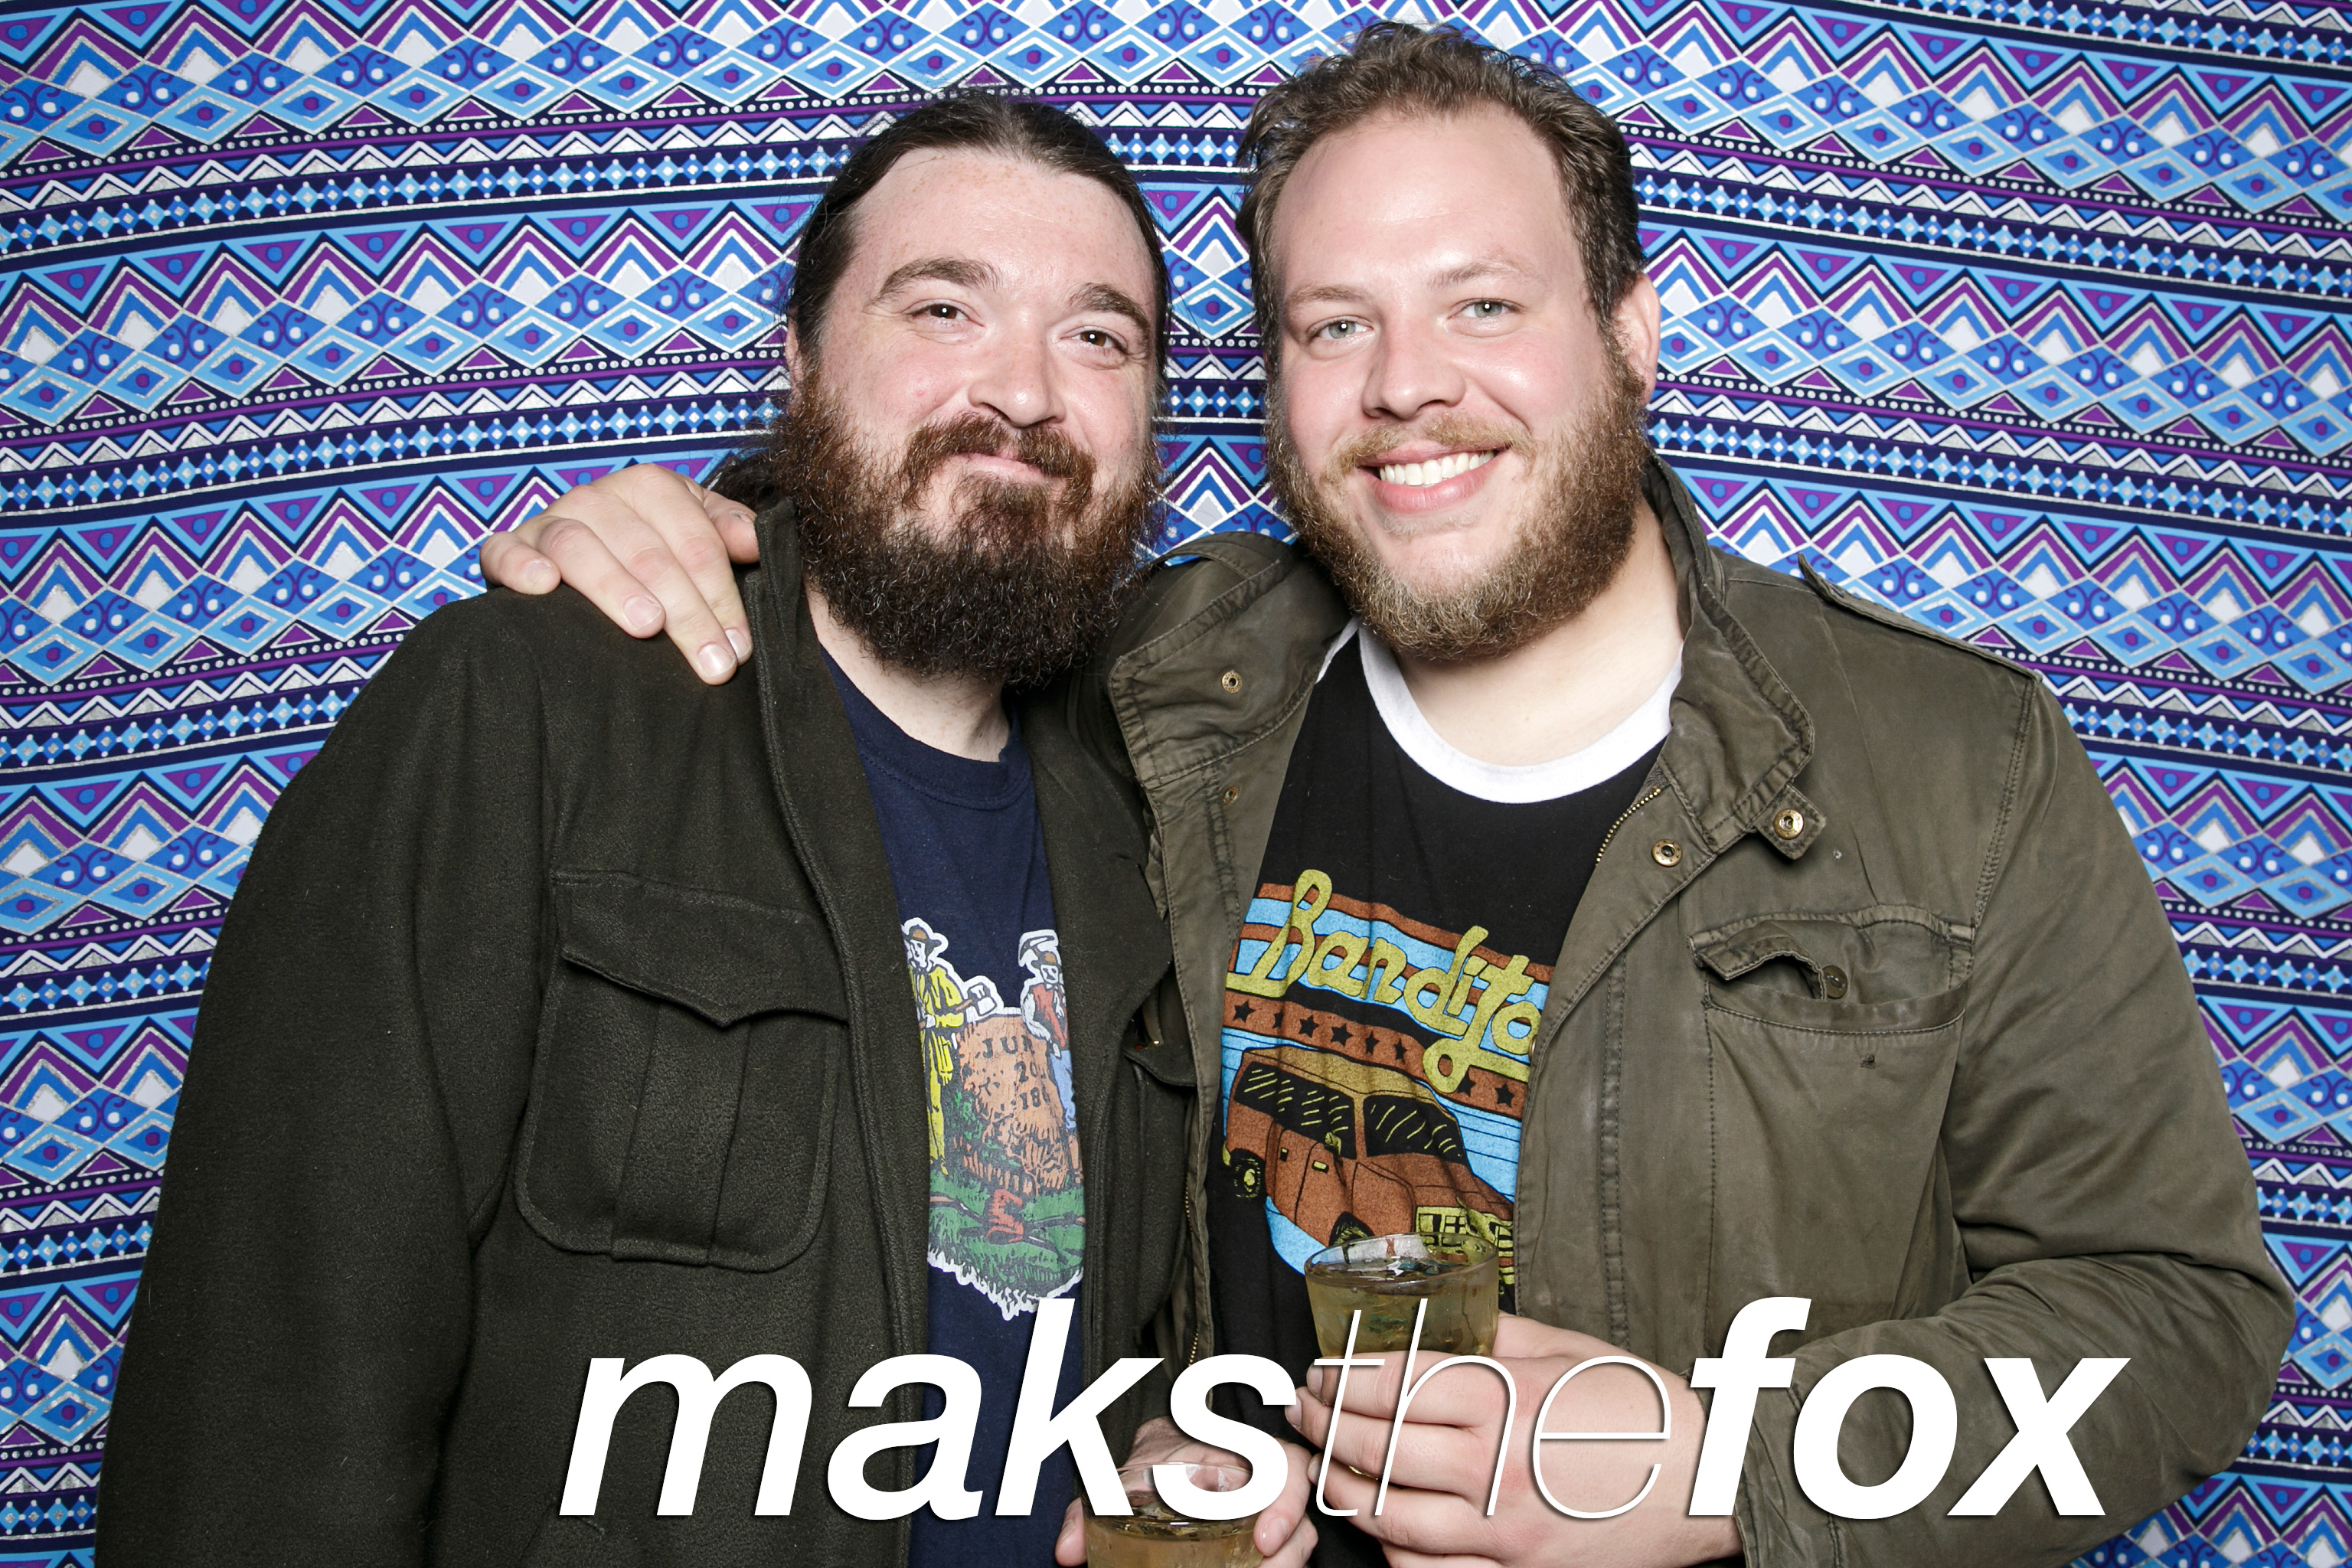 photo booth portraits from maks the fox at the hideout, april 2017